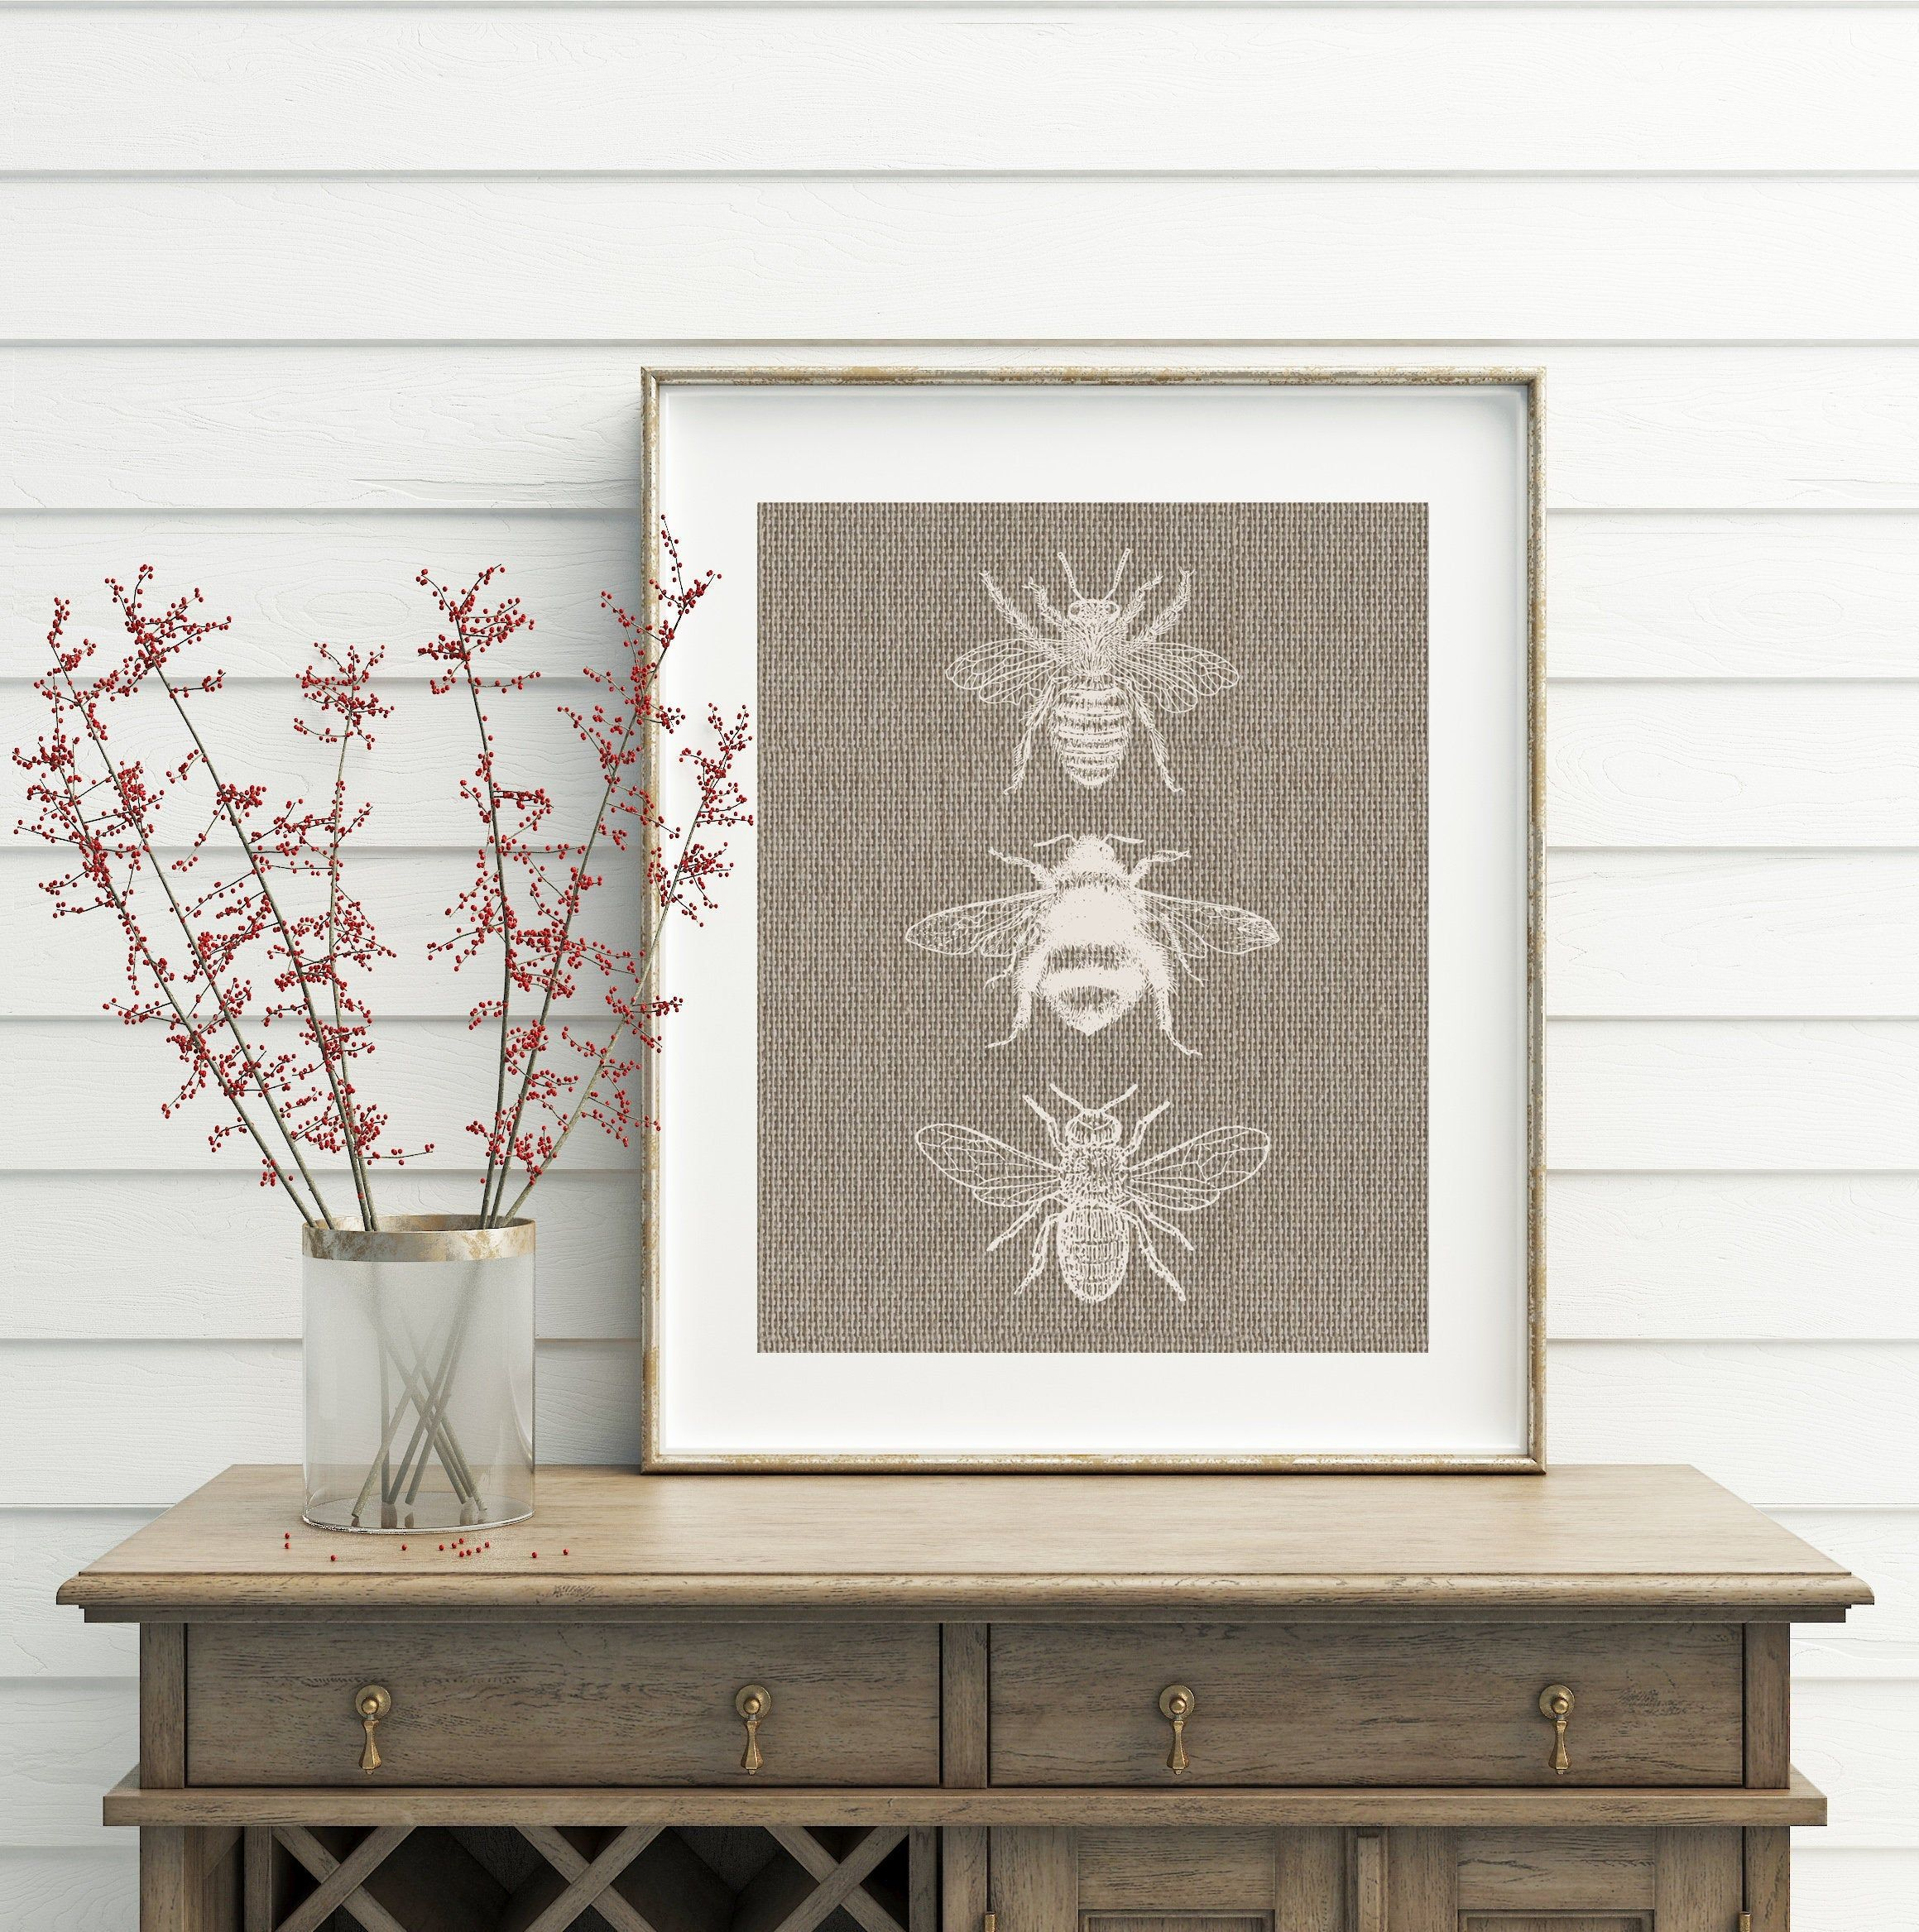 Taupe Wall Art Taupe And Cream Taupe Art Bee Decor Home Etsy In 2020 Wall Decor Printables Bee Decor Taupe Walls